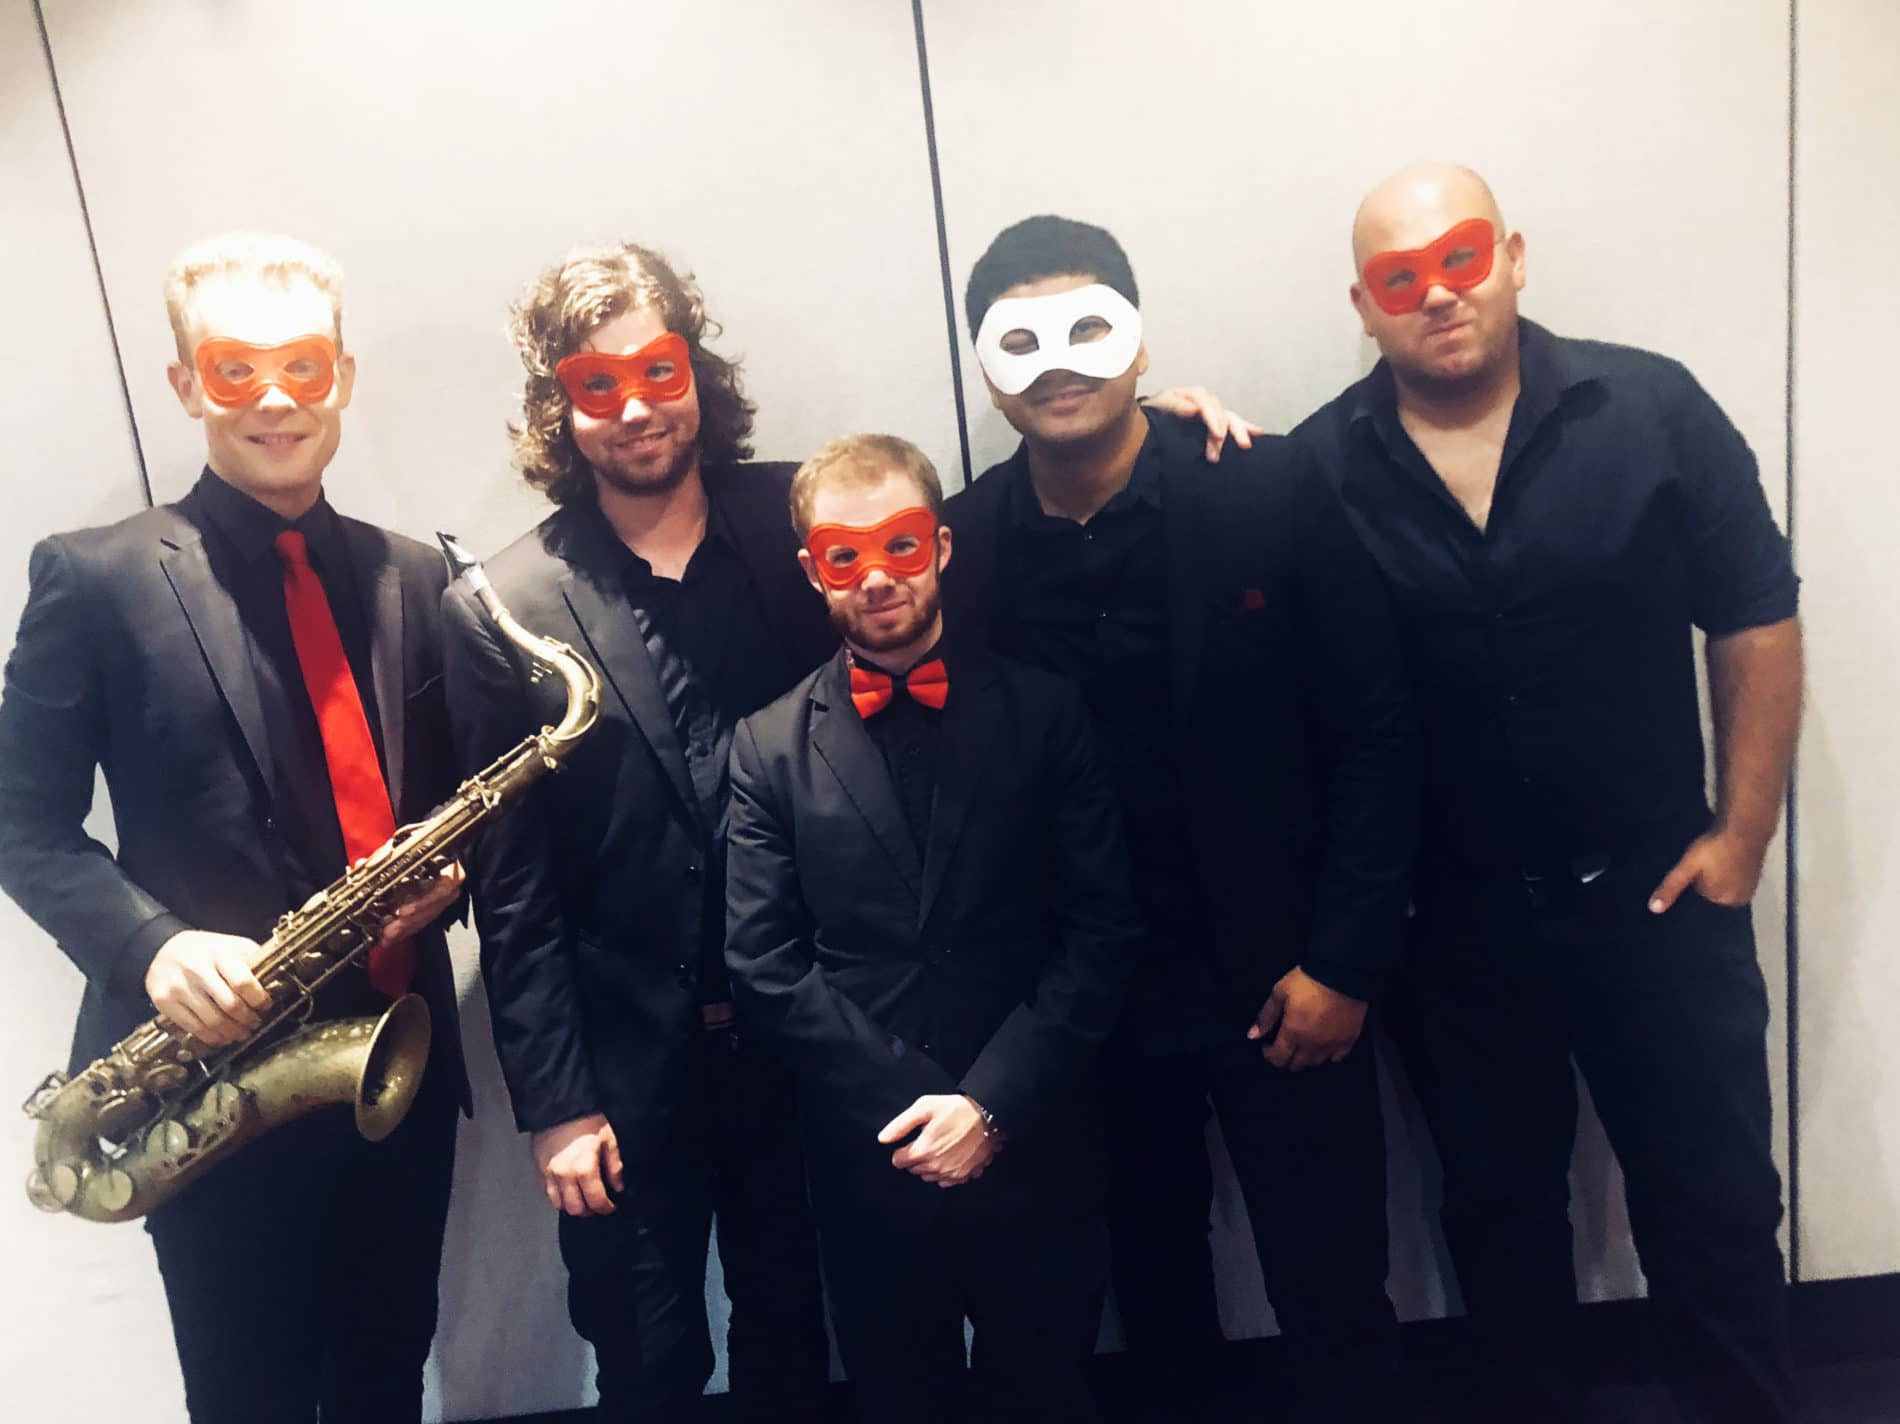 Redtie band in their masquerade getup for Brisbane